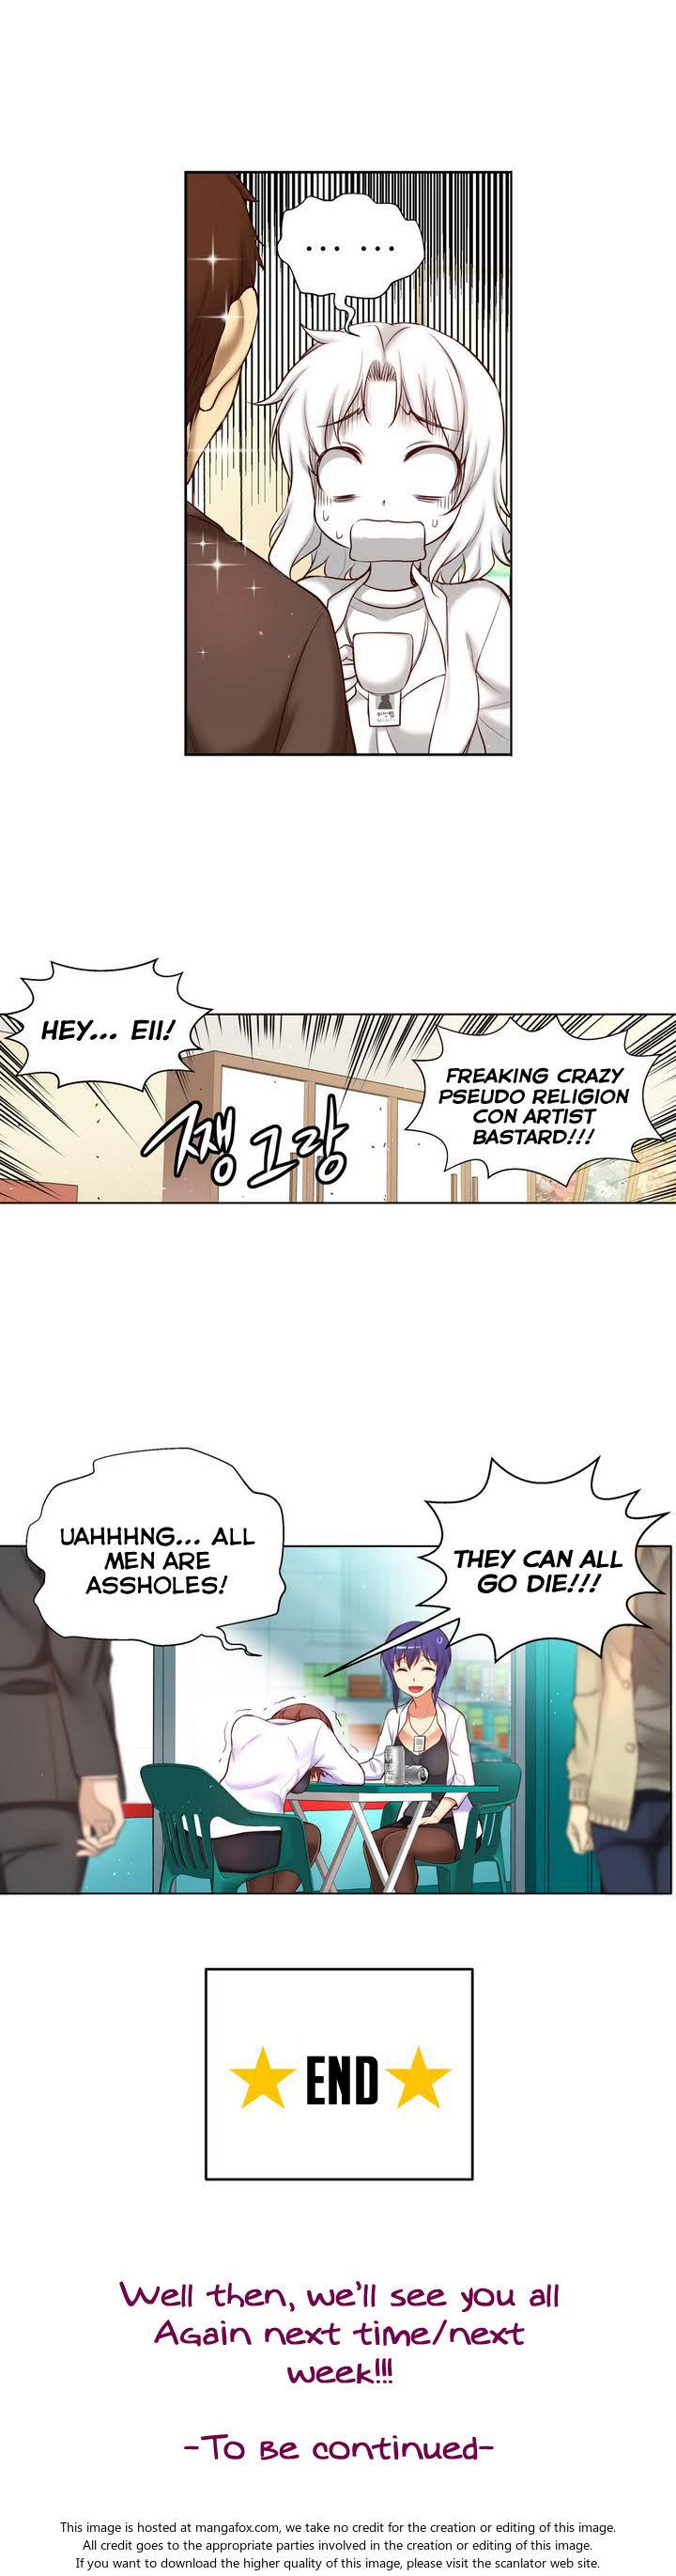 [Donggul Gom] She is Young (English) Part 1/2 884